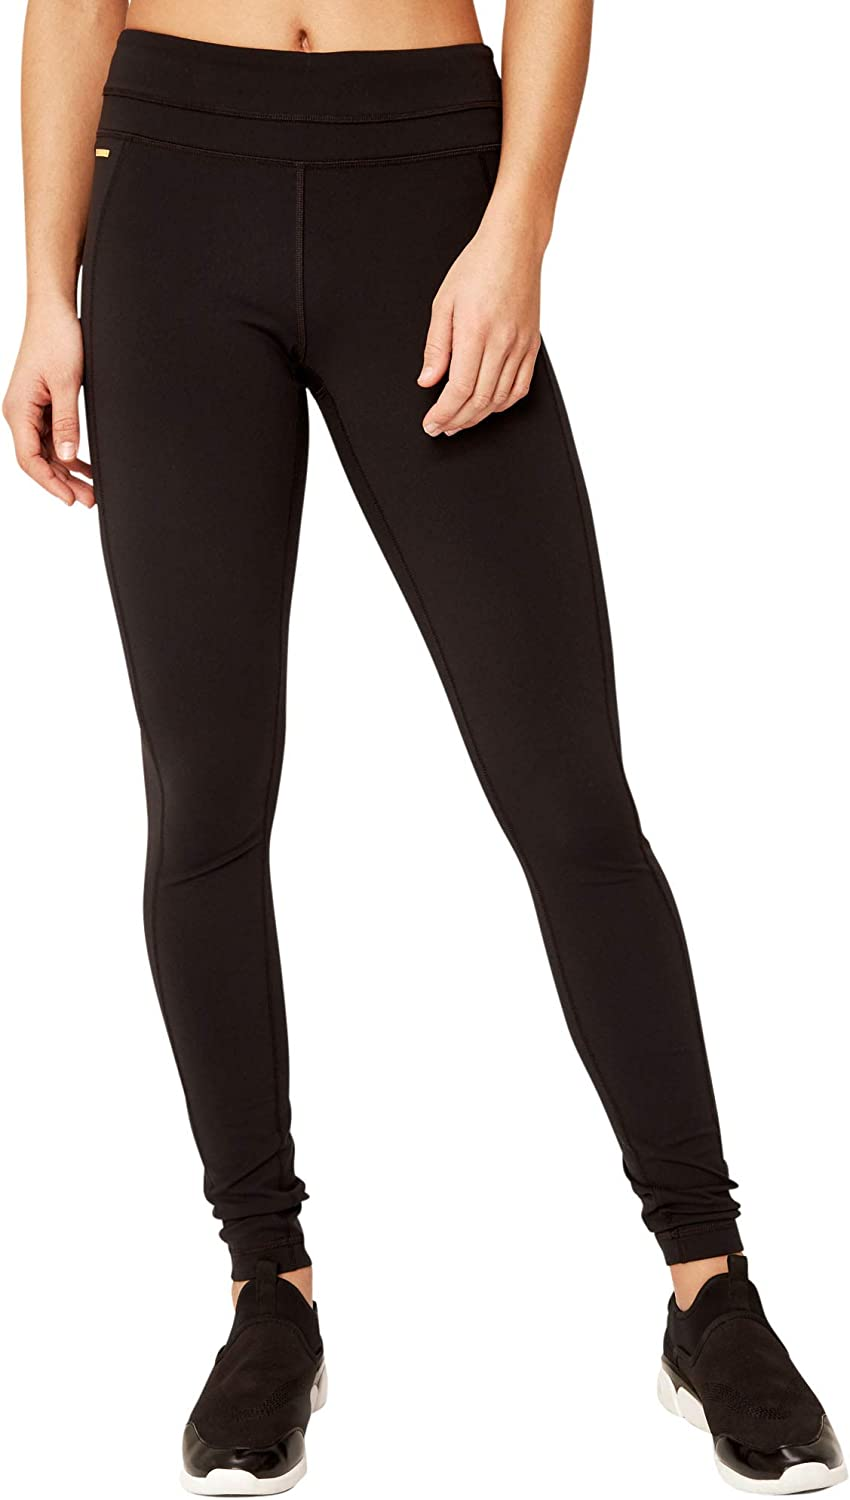 Lole Women's Low Rise Motion Leggings